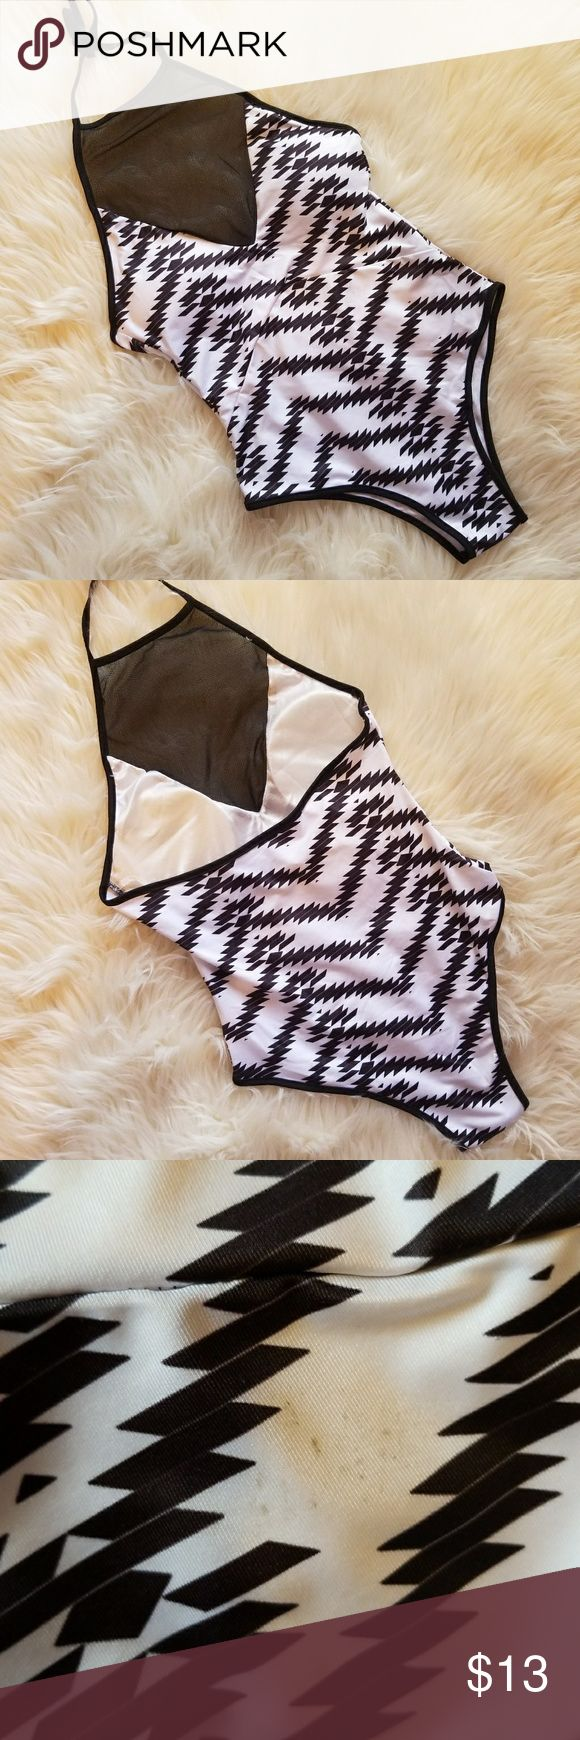 Tribal Print One Piece Bathing Suit Suoer cute bathing suit with a mesh high neck and ties around the neck. Black anf white.  Brand: Boutique Size: Small but no tags. Condition: never worn but it did have a small spot on it when got it. May come out in the washer. Not really noticable.  #bathingsuit #onepiece #tribalprint #meshbarhingsuit #swimsuit #onepiecesuit #swim #seimwear #chicswimwear #chic #summer #summerfashion #summerstyle #fashion #style #cheap #styleforcheap #xoxopf…